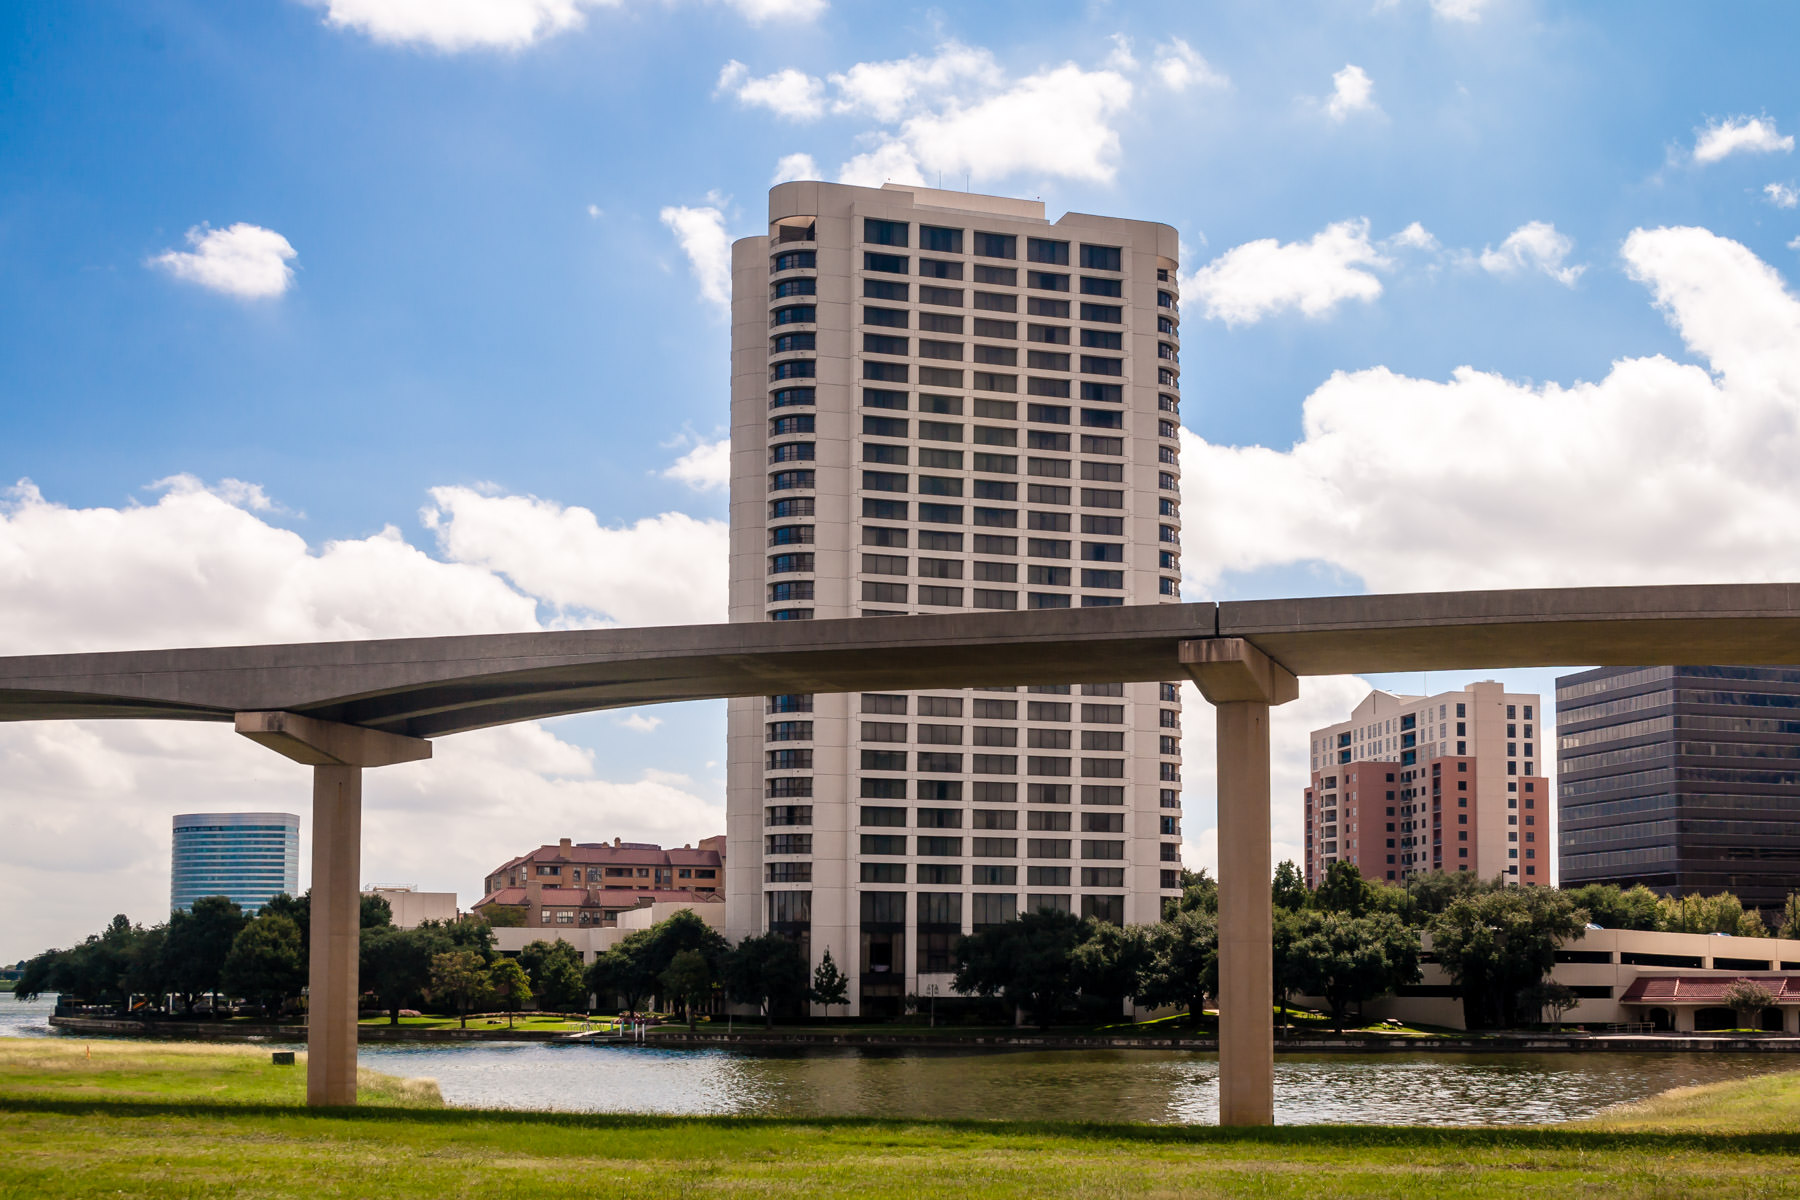 The railway for the Las Colinas people mover snakes past the Omni Mandalay Hotel in Irving, Texas.